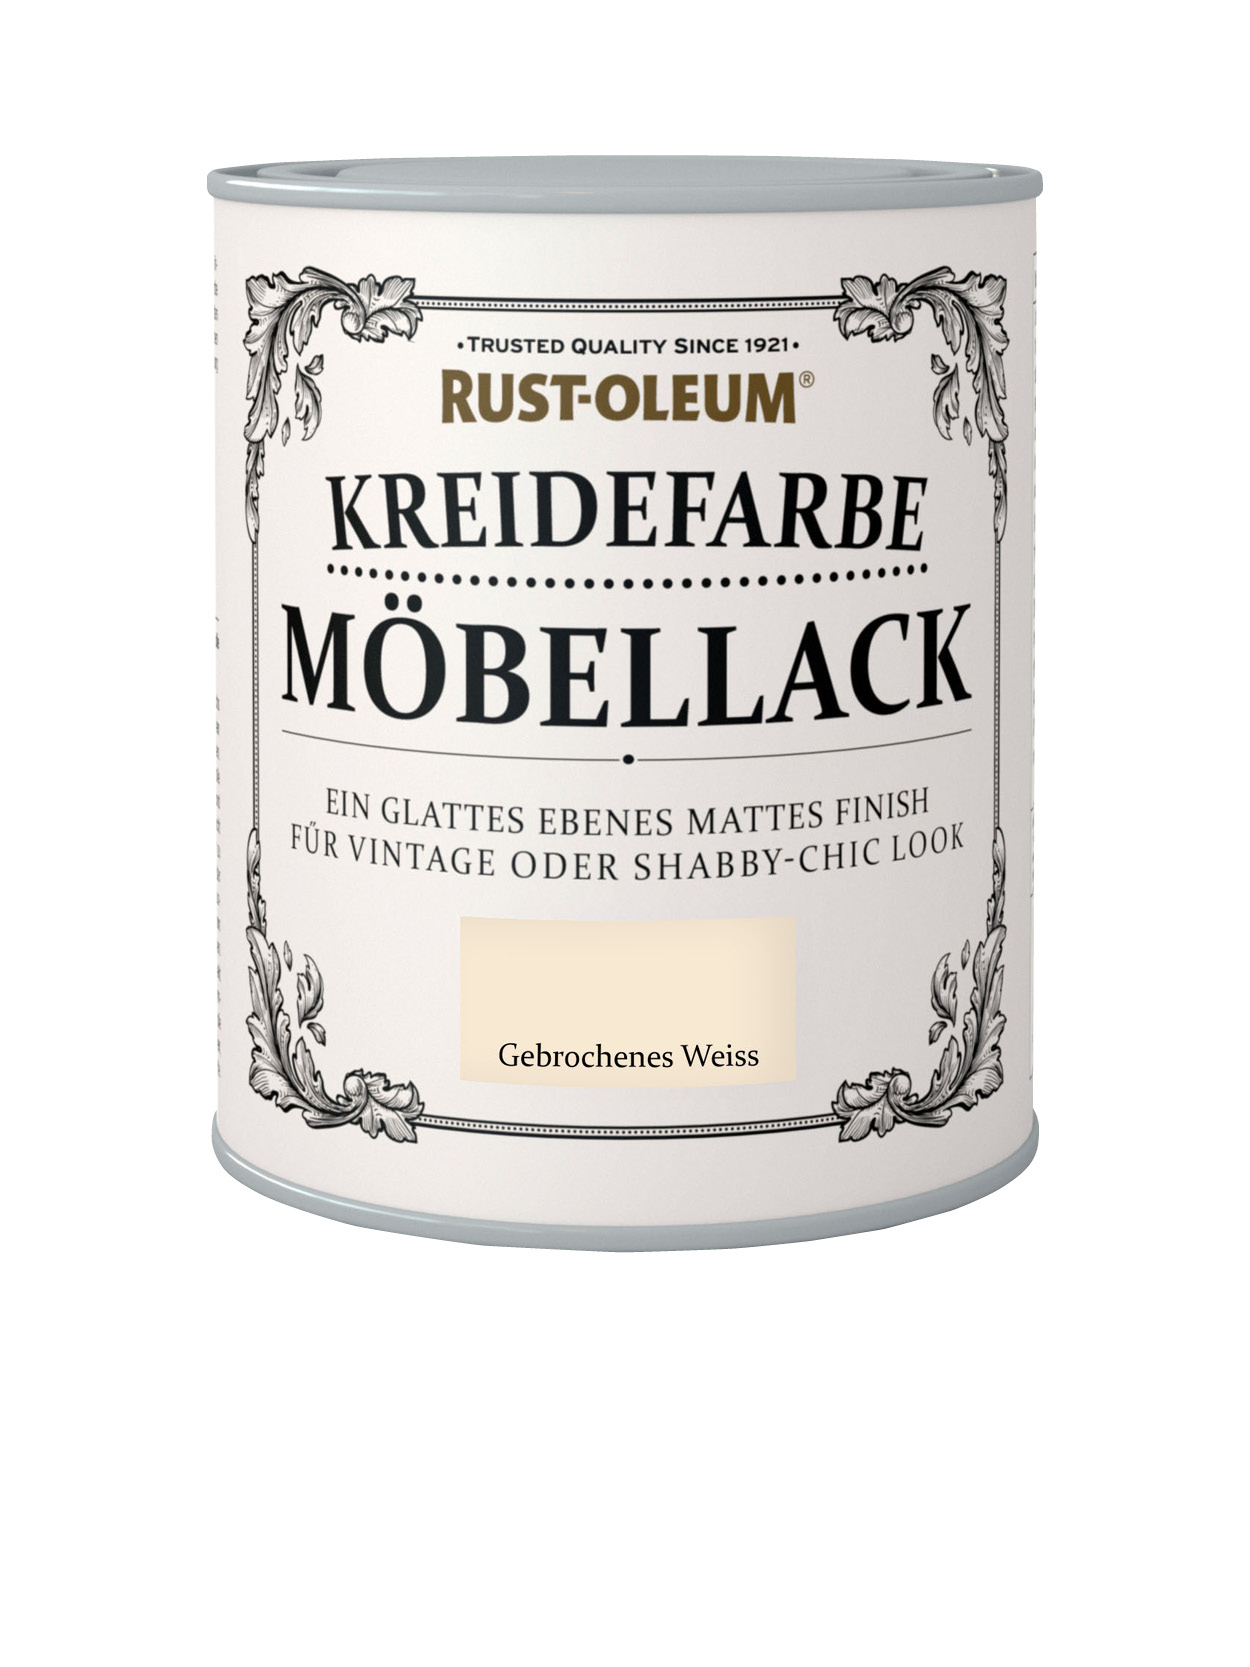 kreidefarbe mobellack gebrochenes weiss rustoleum spray. Black Bedroom Furniture Sets. Home Design Ideas